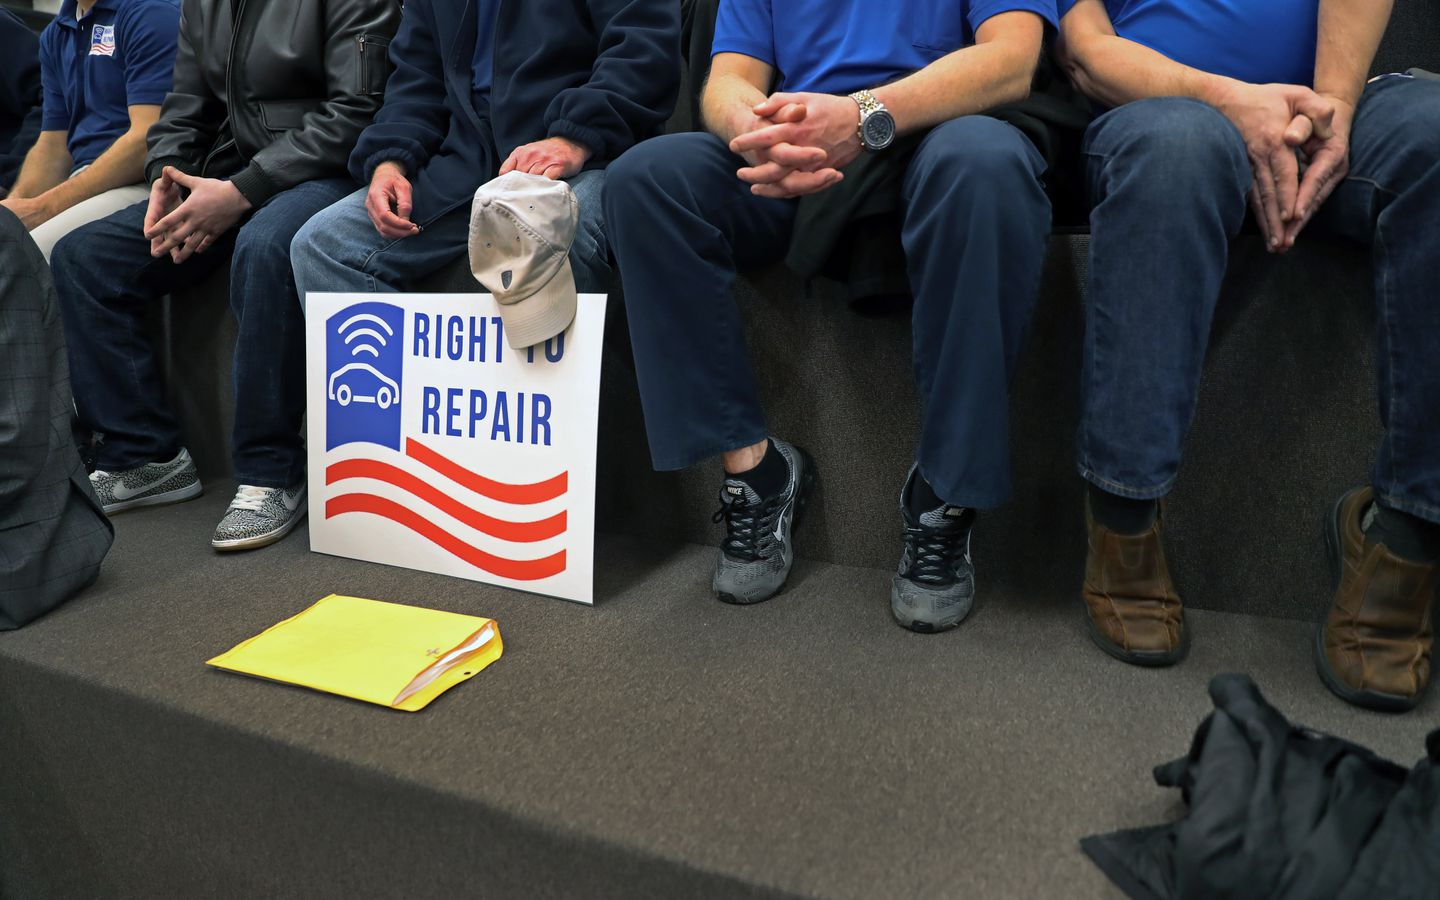 In Massachusetts, so-called right-to-repair legislation has been debated since at least 2012.